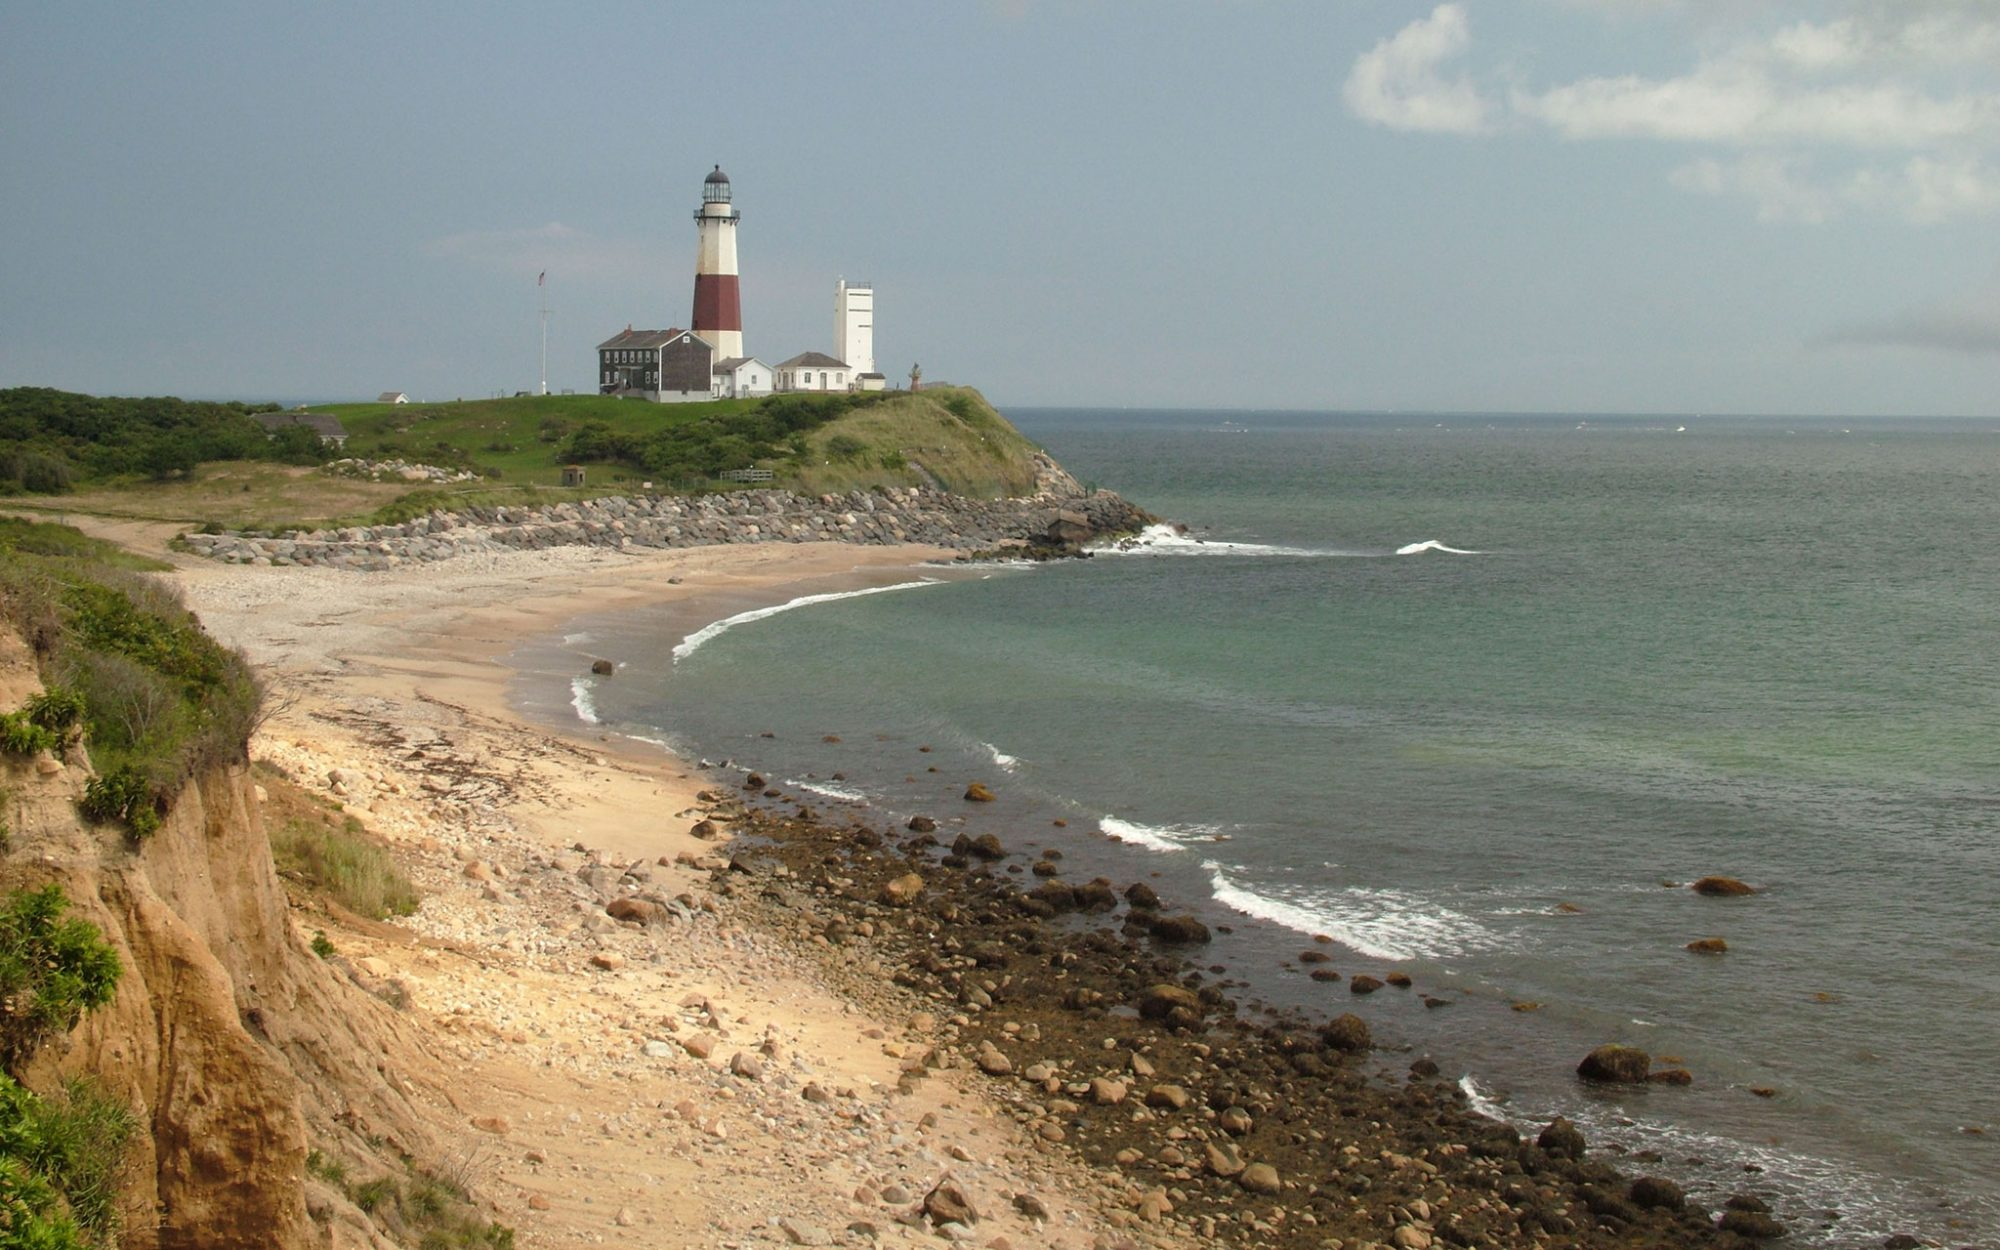 201402-w-romantic-towns-montauk